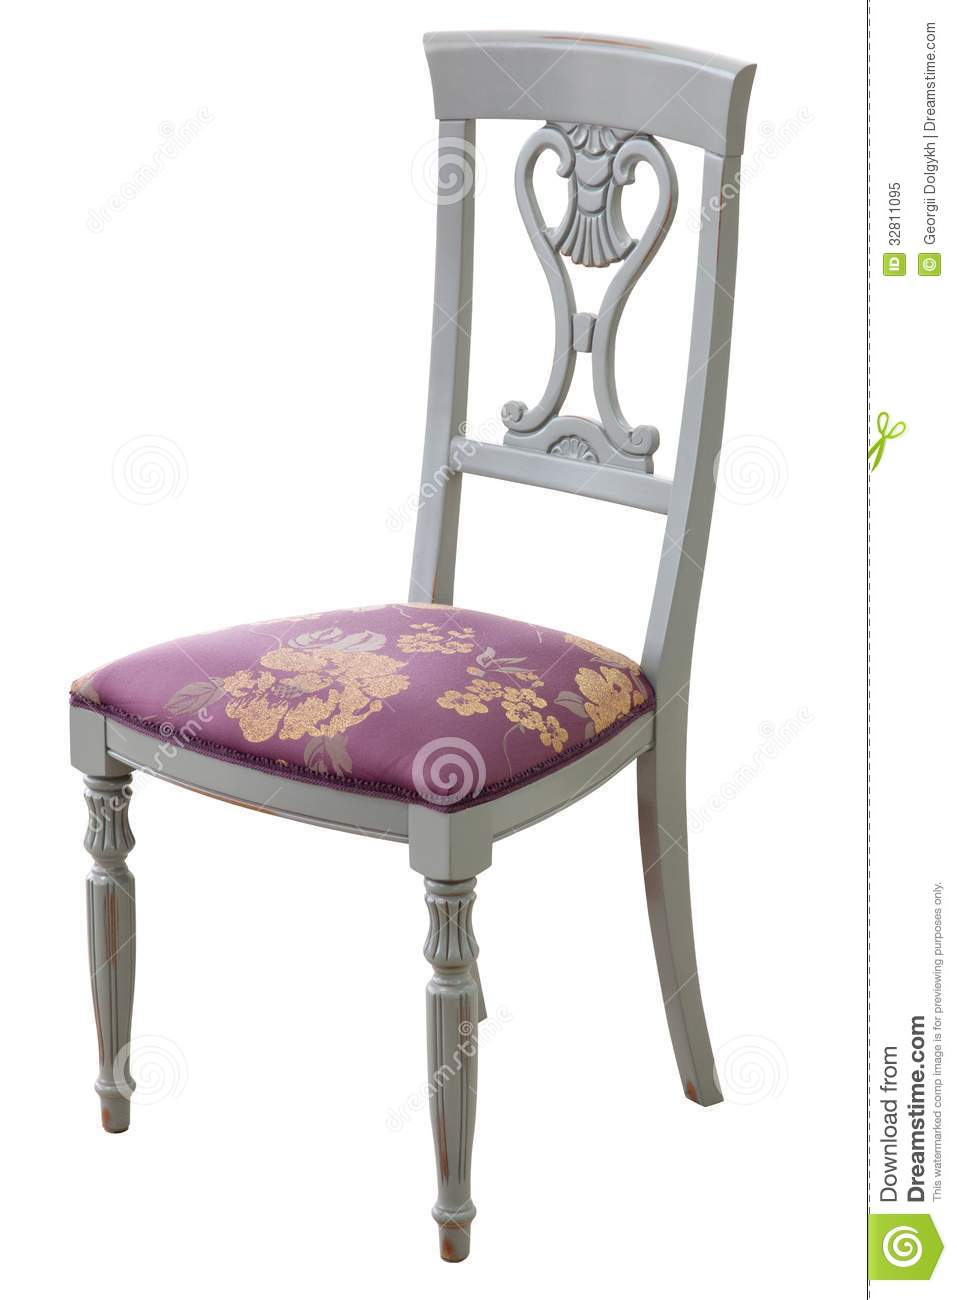 Classical Style Chair Royalty Free Stock Photo - Image